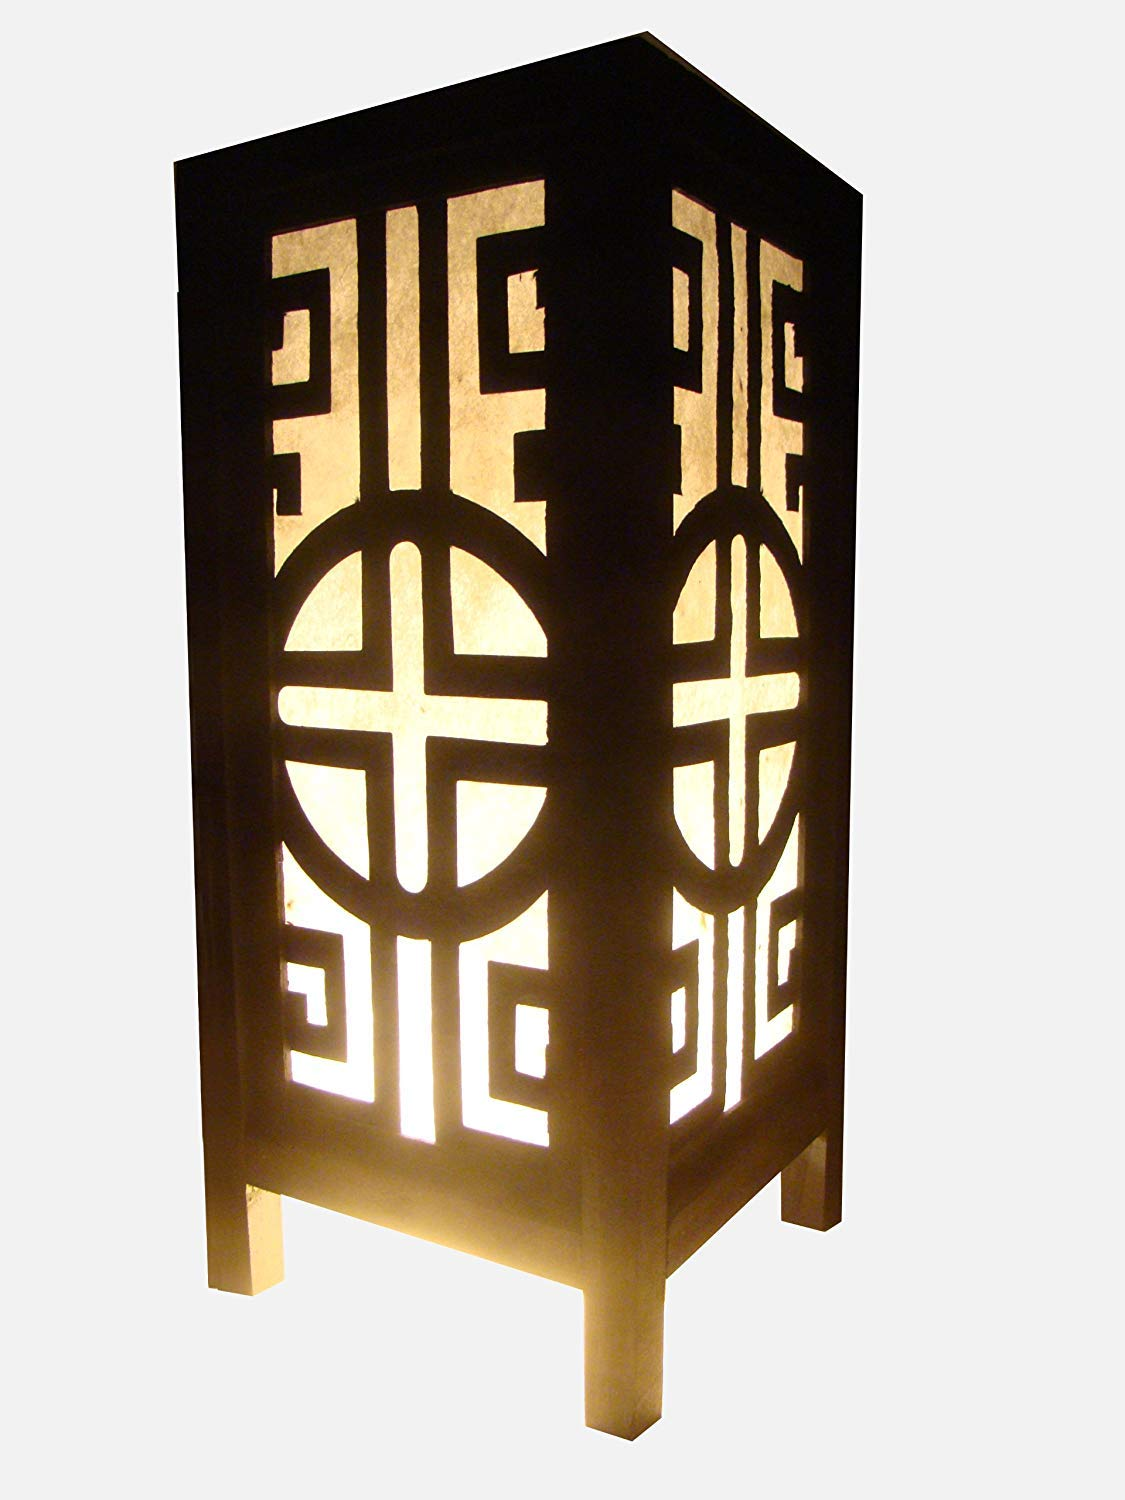 Thai Vintage Handmade Asian Oriental Classic China Black White Bedside Table Light or Floor Wood Paper Lamp Shades Home Bedroom Garden Decor Modern Design from Thailand by Red berry Thailand Lanna Lamp